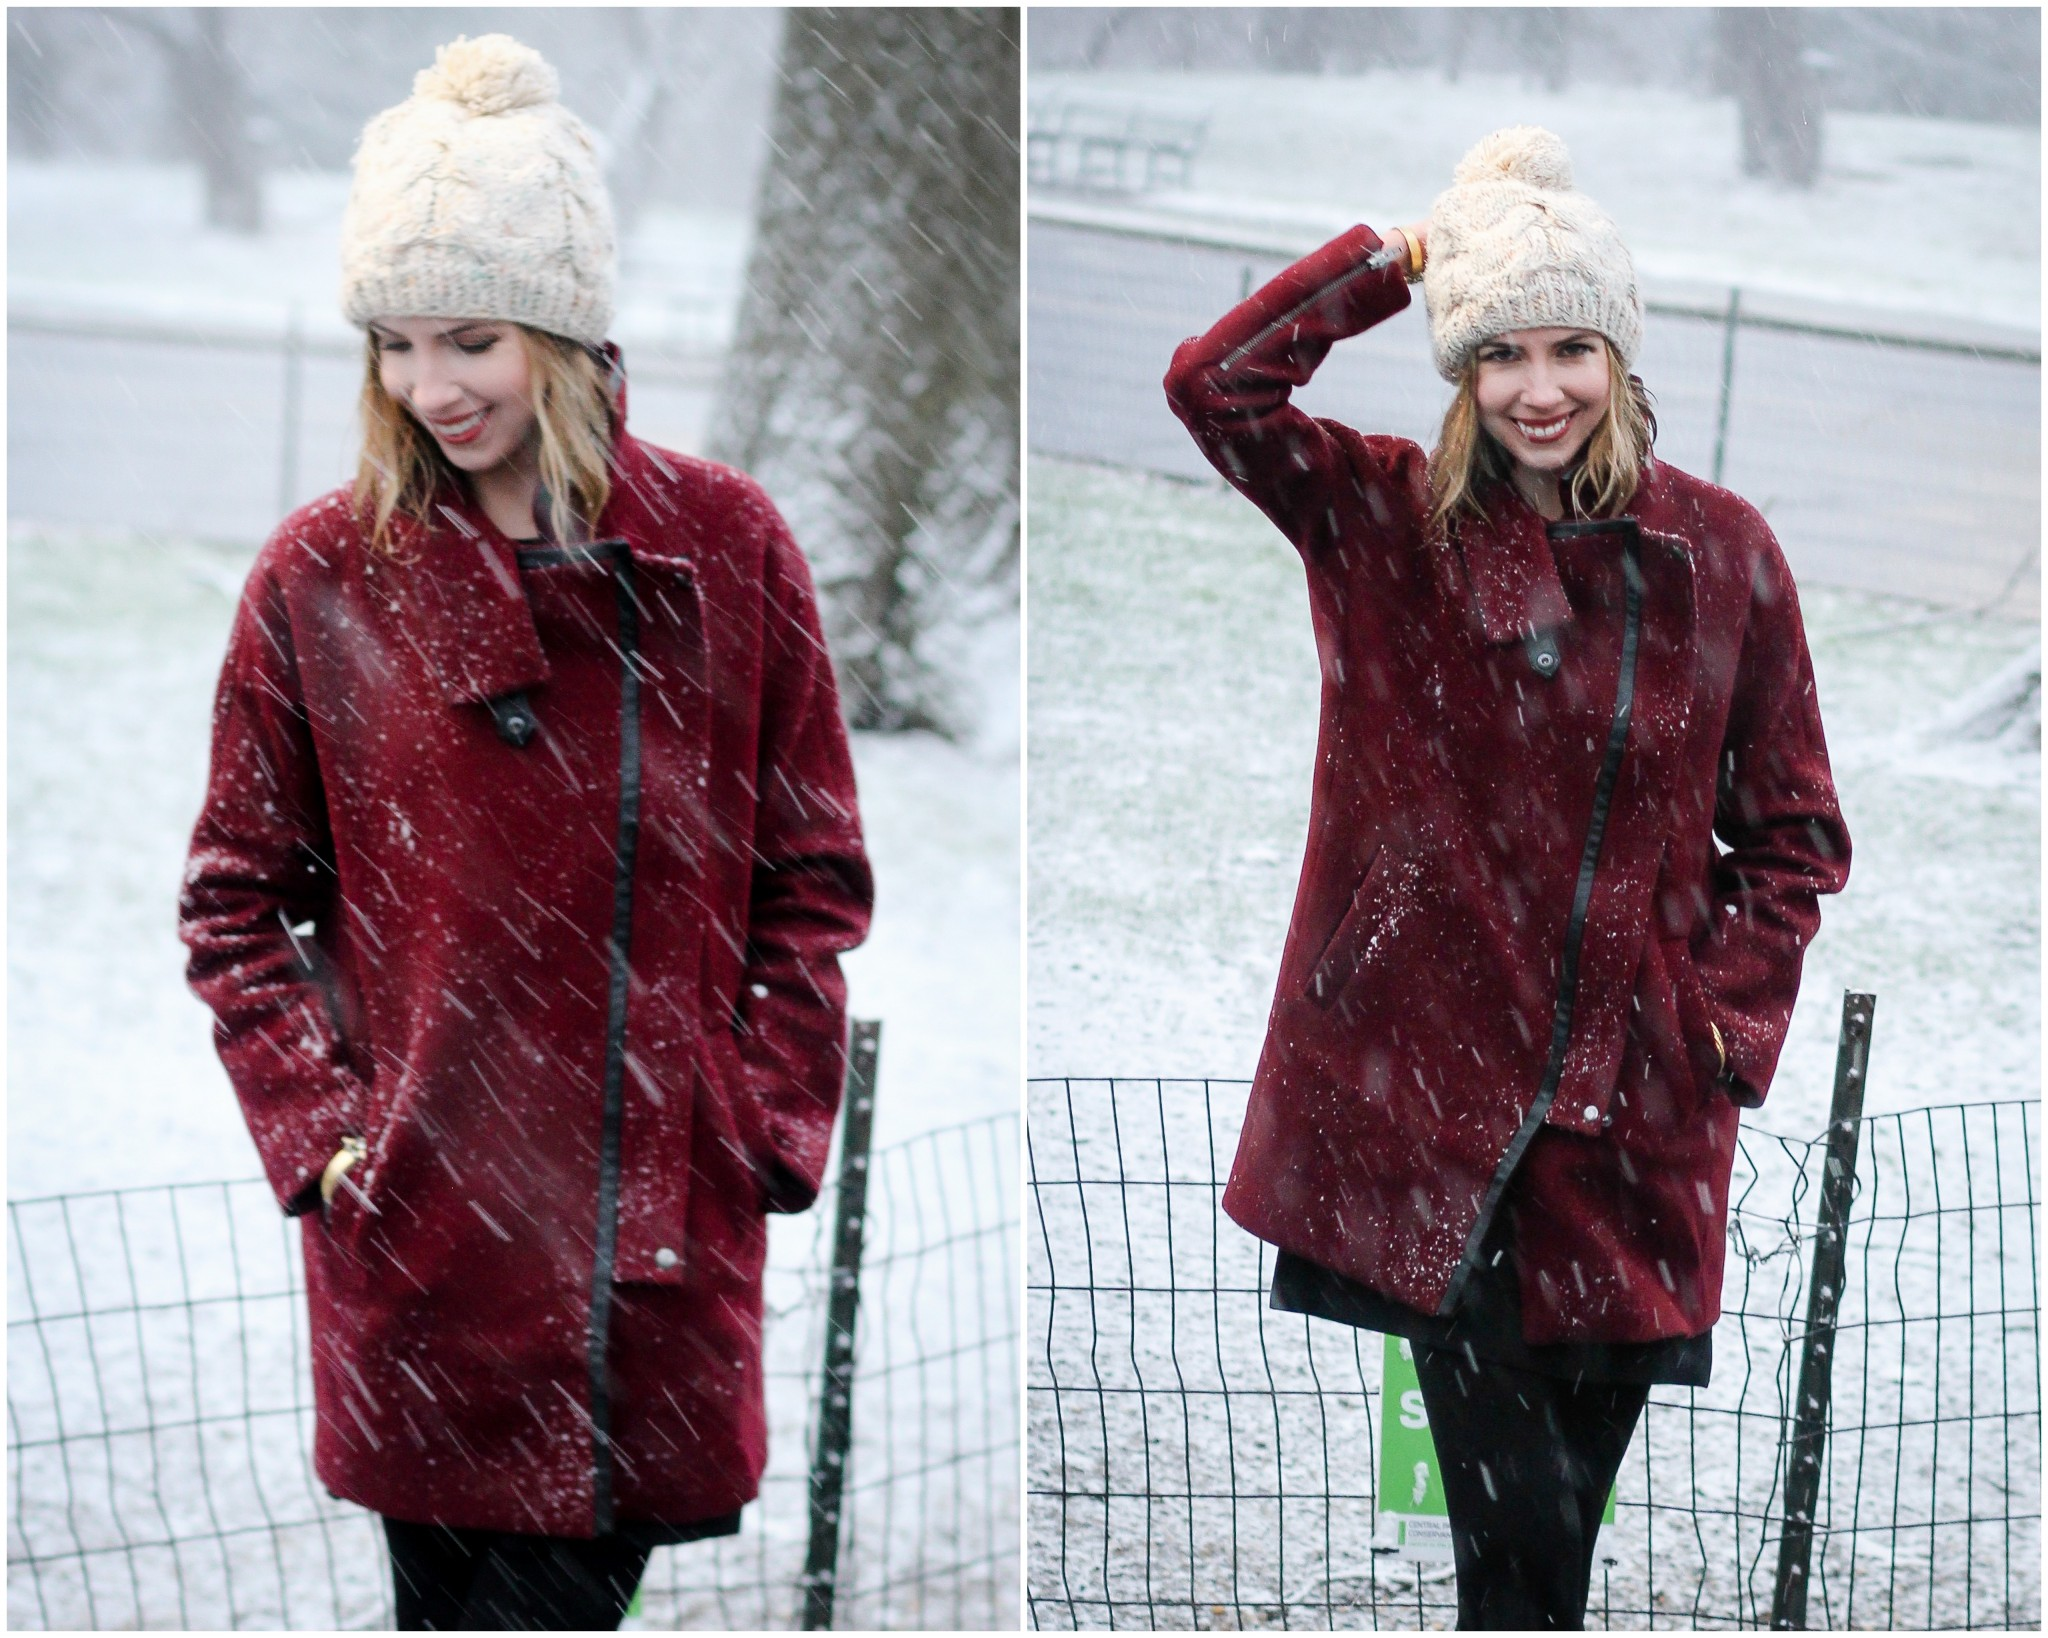 Madewell City Grid Coat in Dark Cabernet | Madewell Sézane Parisien Beanie | Casually Glam 100th Post